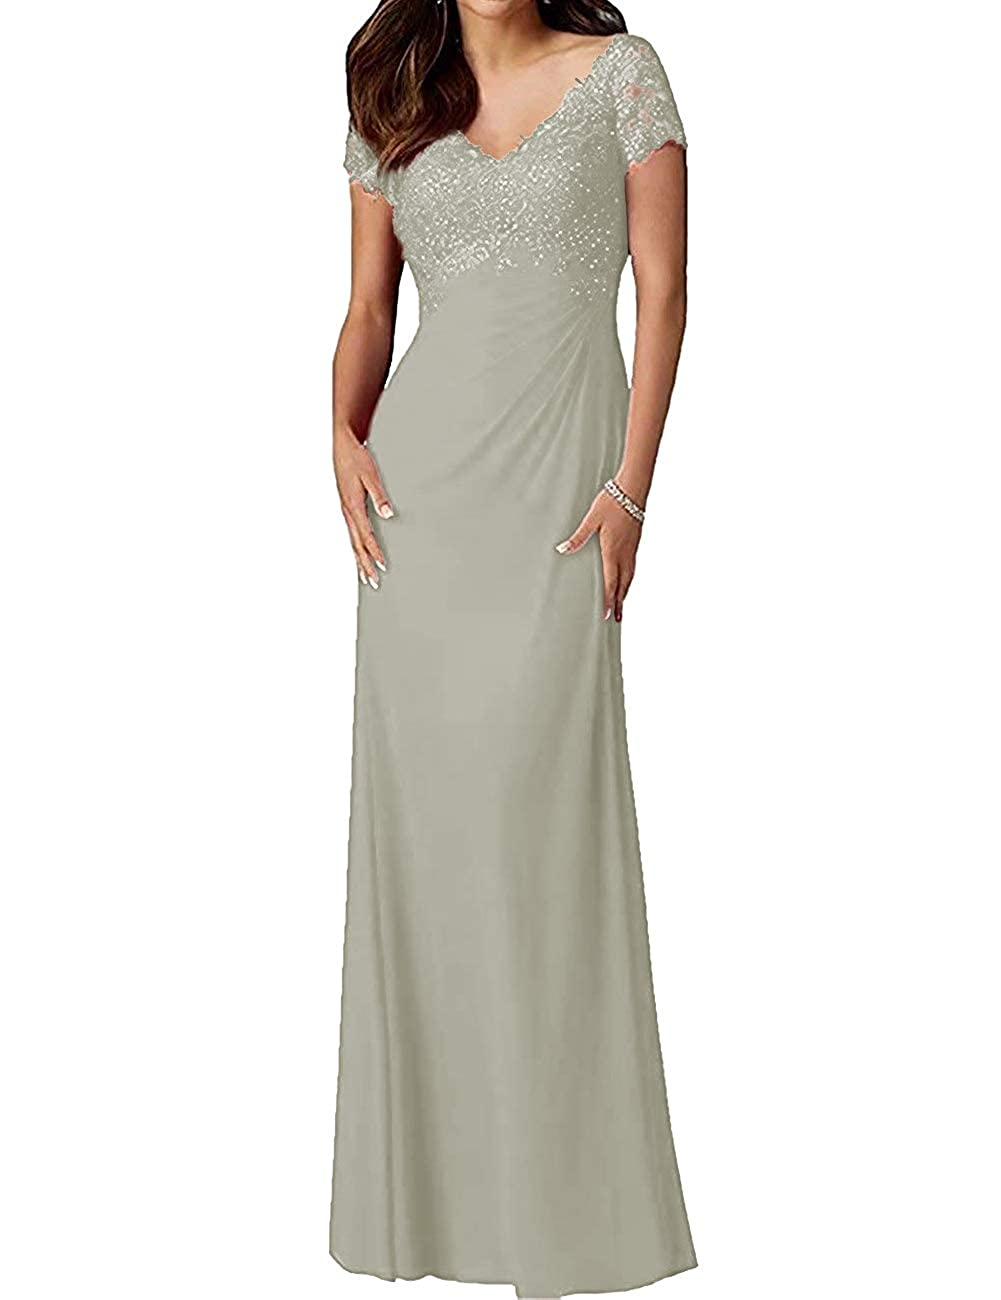 Silver H.S.D Mother of The Bride Dresses Lace Formal Gowns Long Evening Dresses Short Sleeve